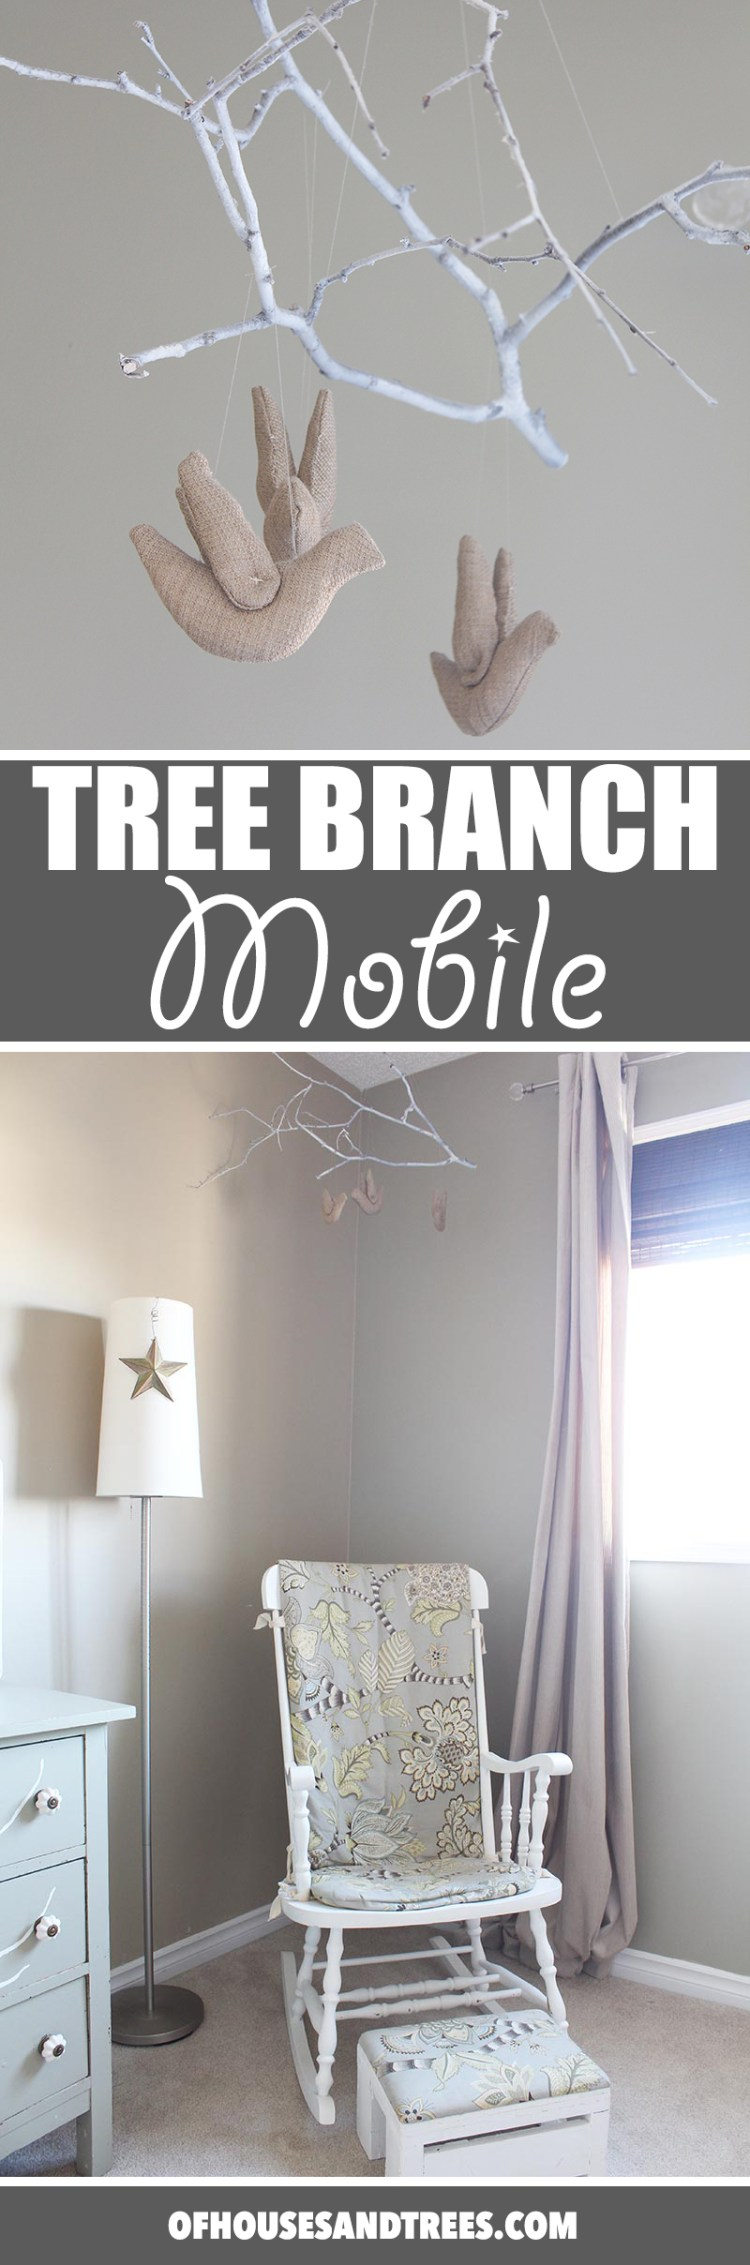 Super charming and whimsical DIY tree branch mobile made with a spray-painted poplar branch, stuffed birds and fishing line.